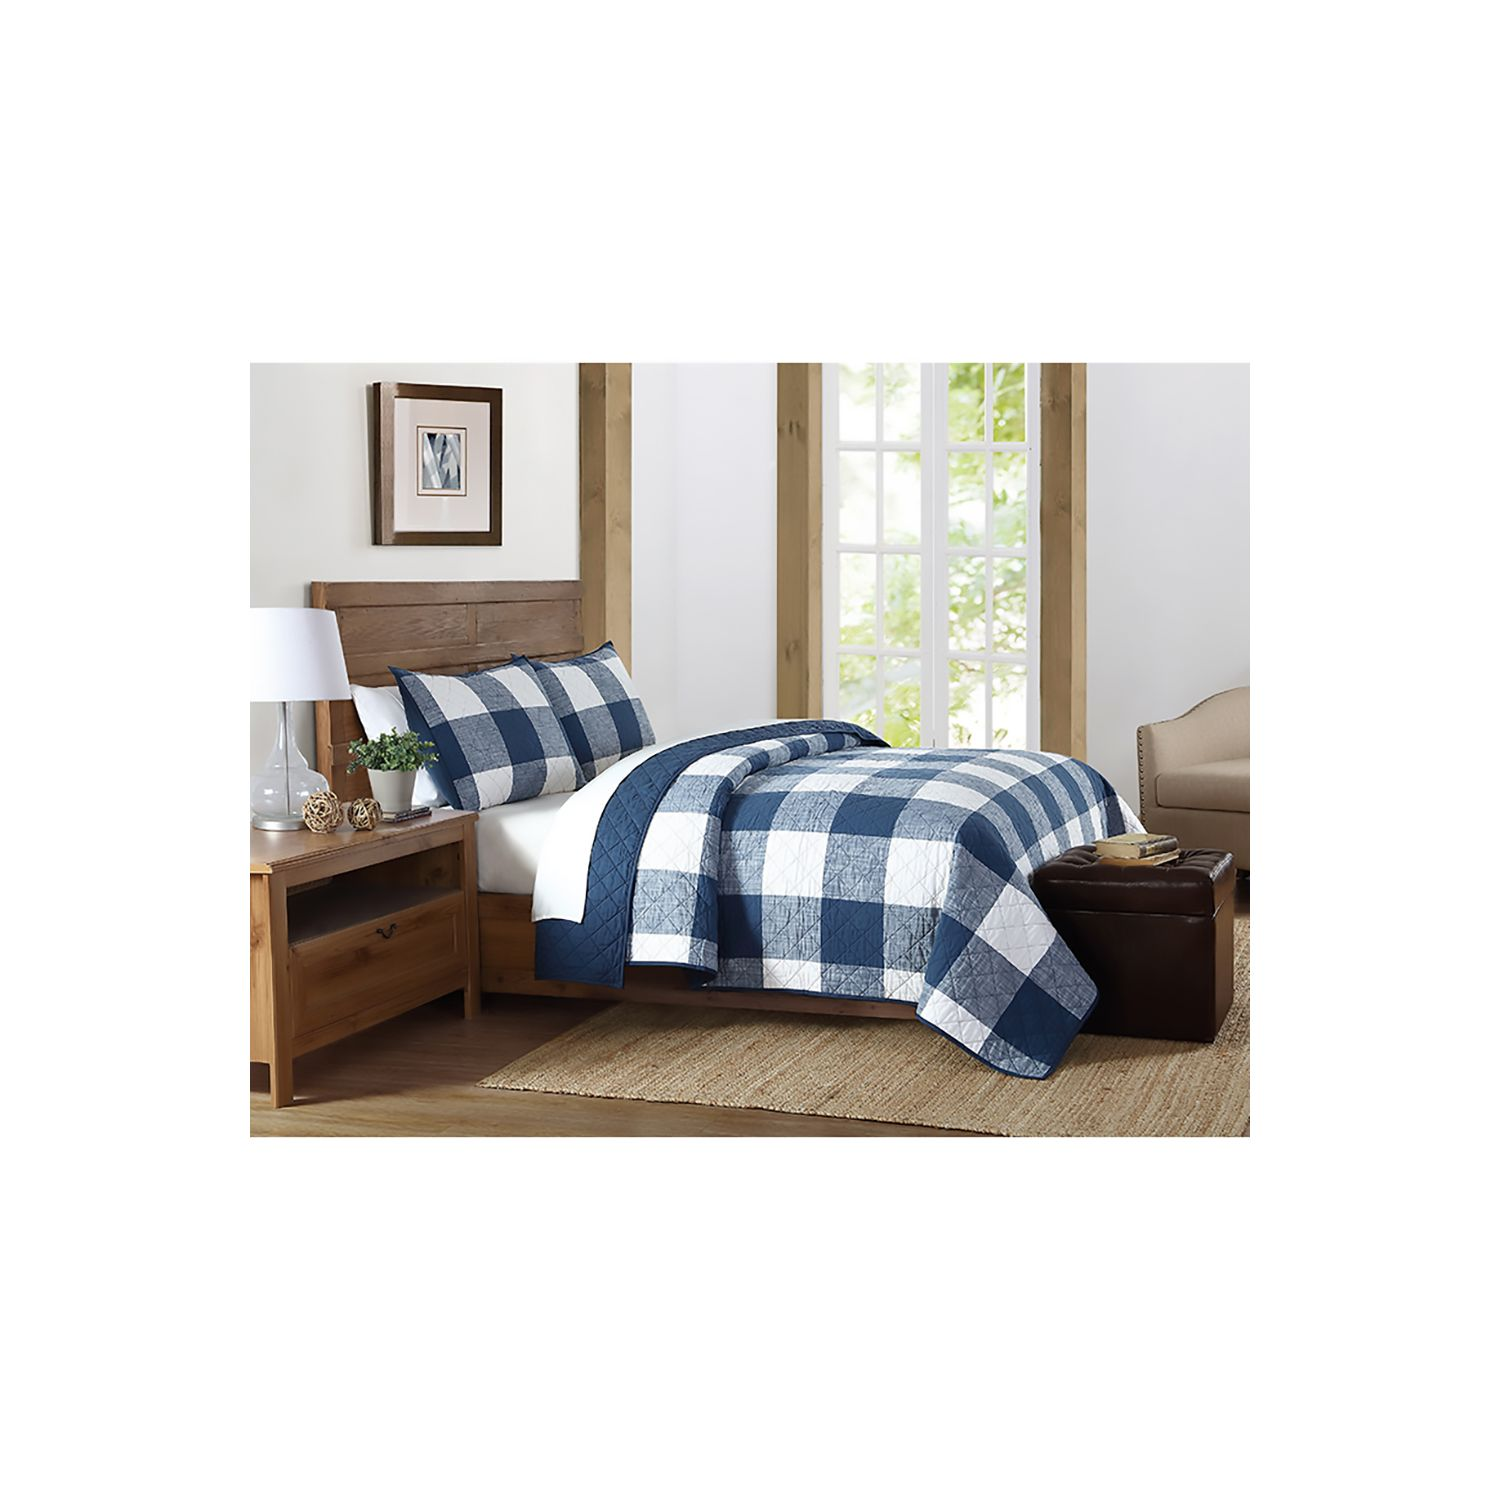 pdx set reviews check bauer bed comforter plaid willow wayfair buffalo eddie bath